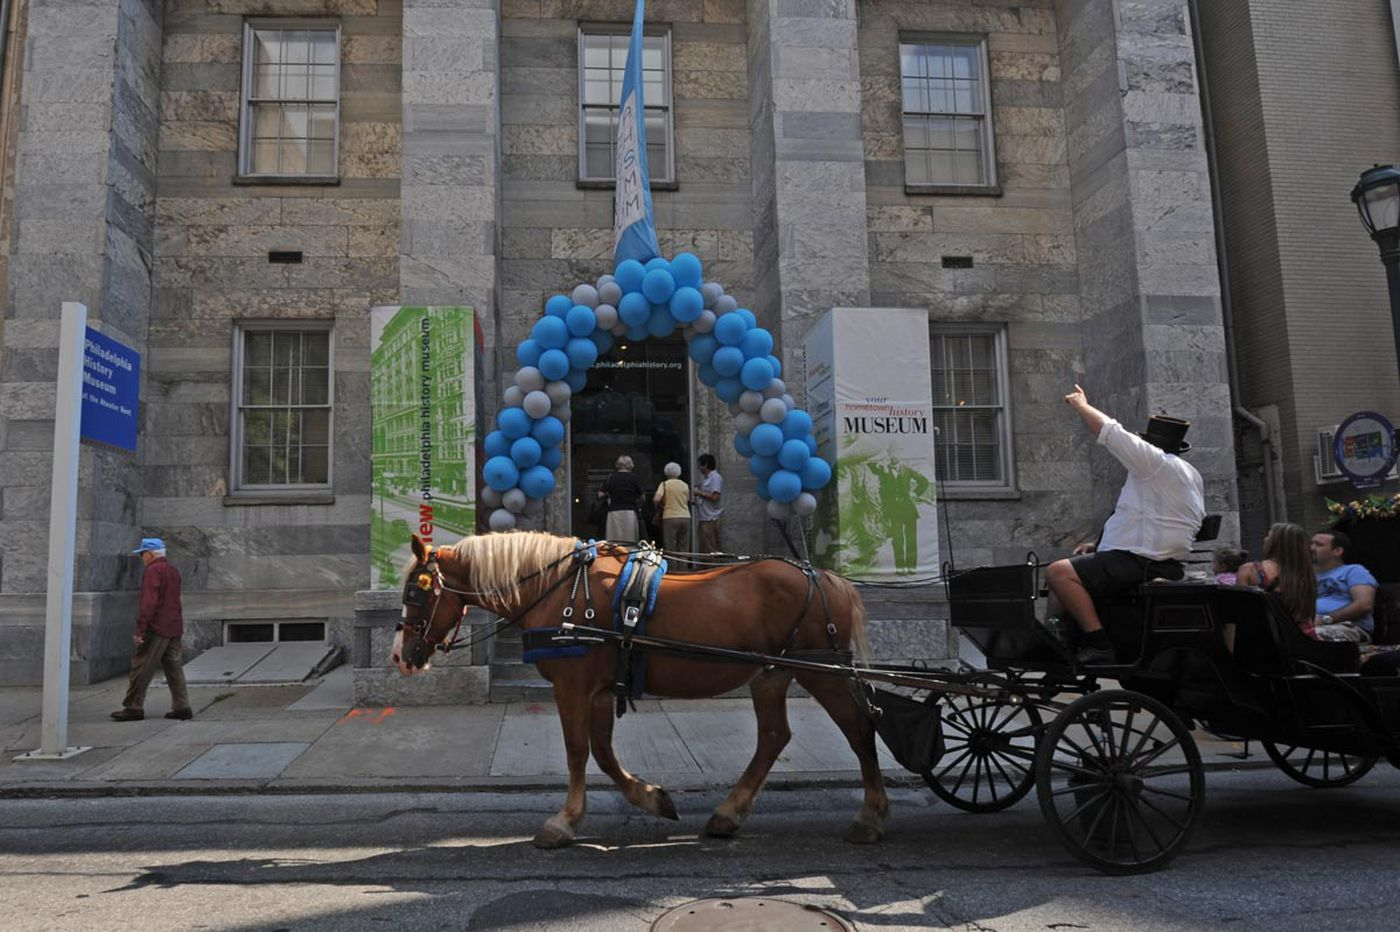 An intriguing match up of Philadelphia's history museum and Drexel University | Editorial